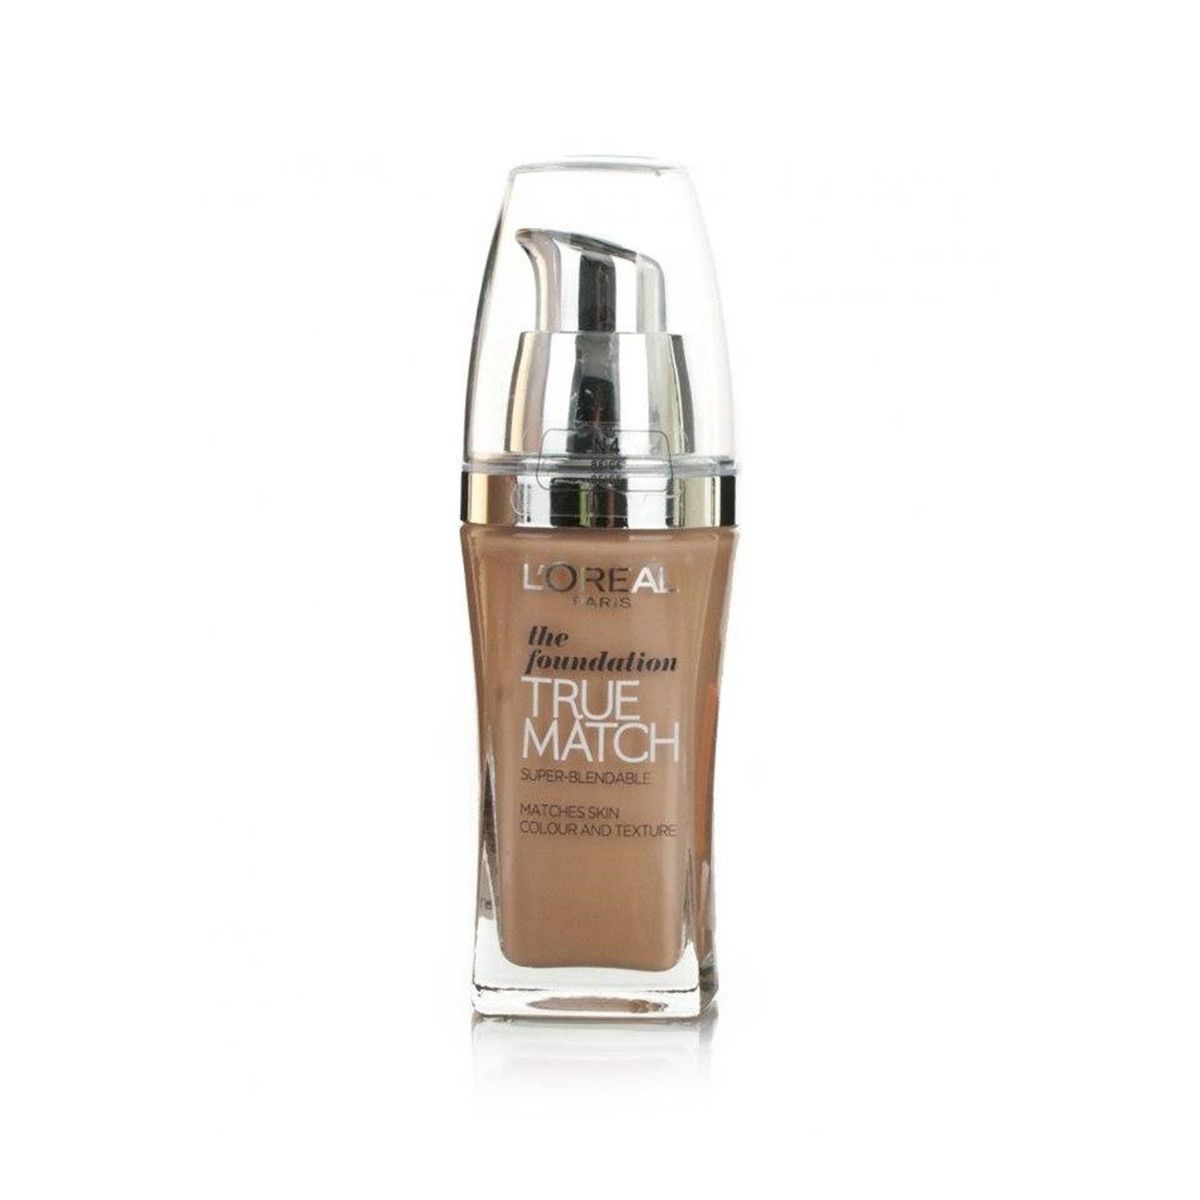 LOreal True Match The Foundation 30ml  N4 Beige